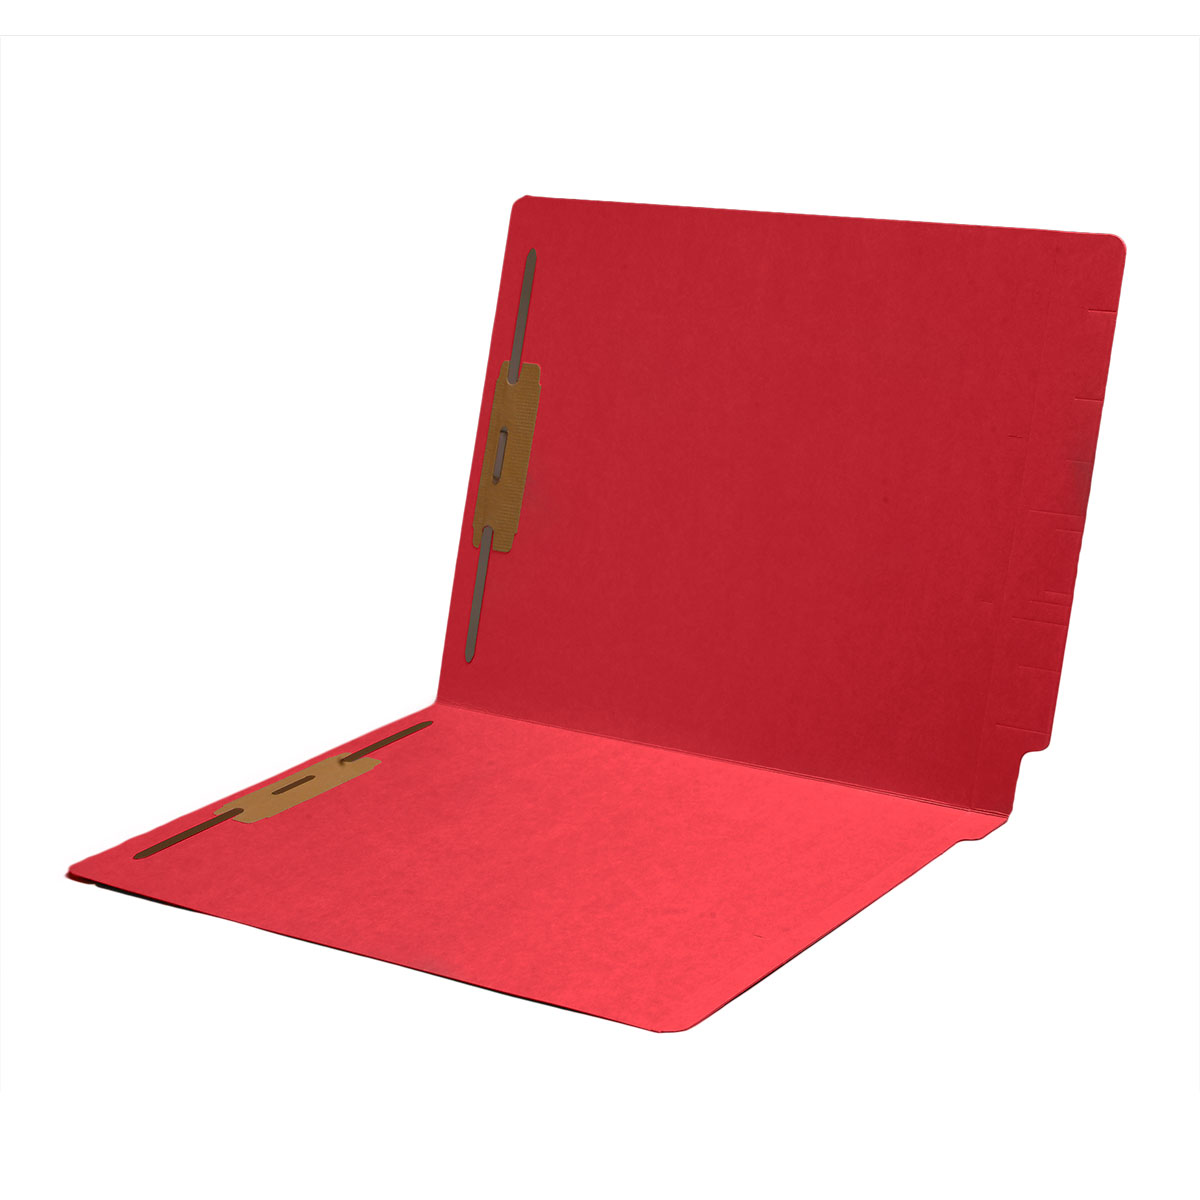 S-1502-RED - 11 pt Color Folders, Full Cut 2-Ply End Tab, Letter Size, Fasteners Pos #1 & #3, Red (Box of 50)